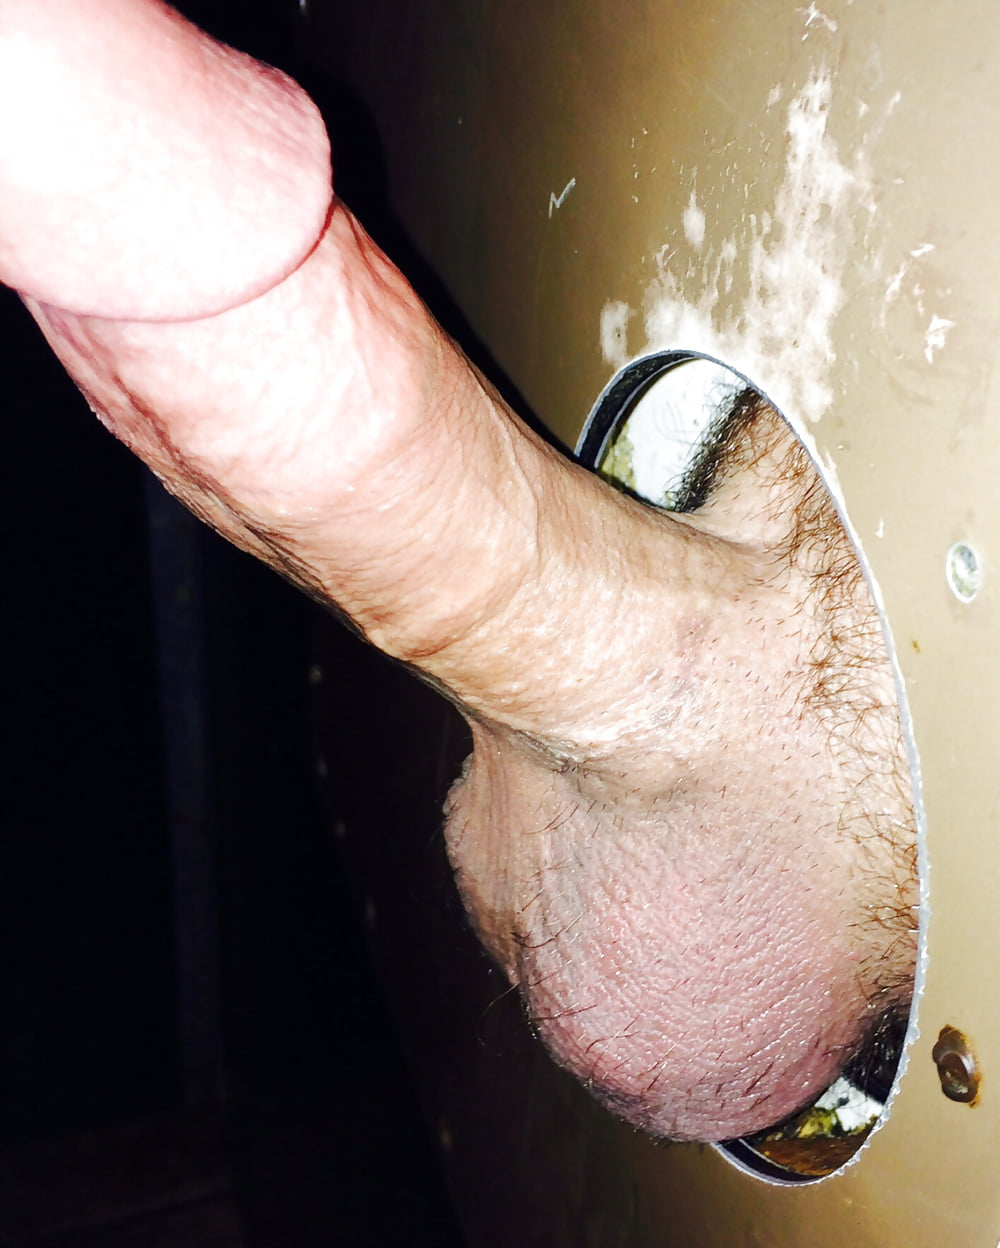 Glory hole in prison